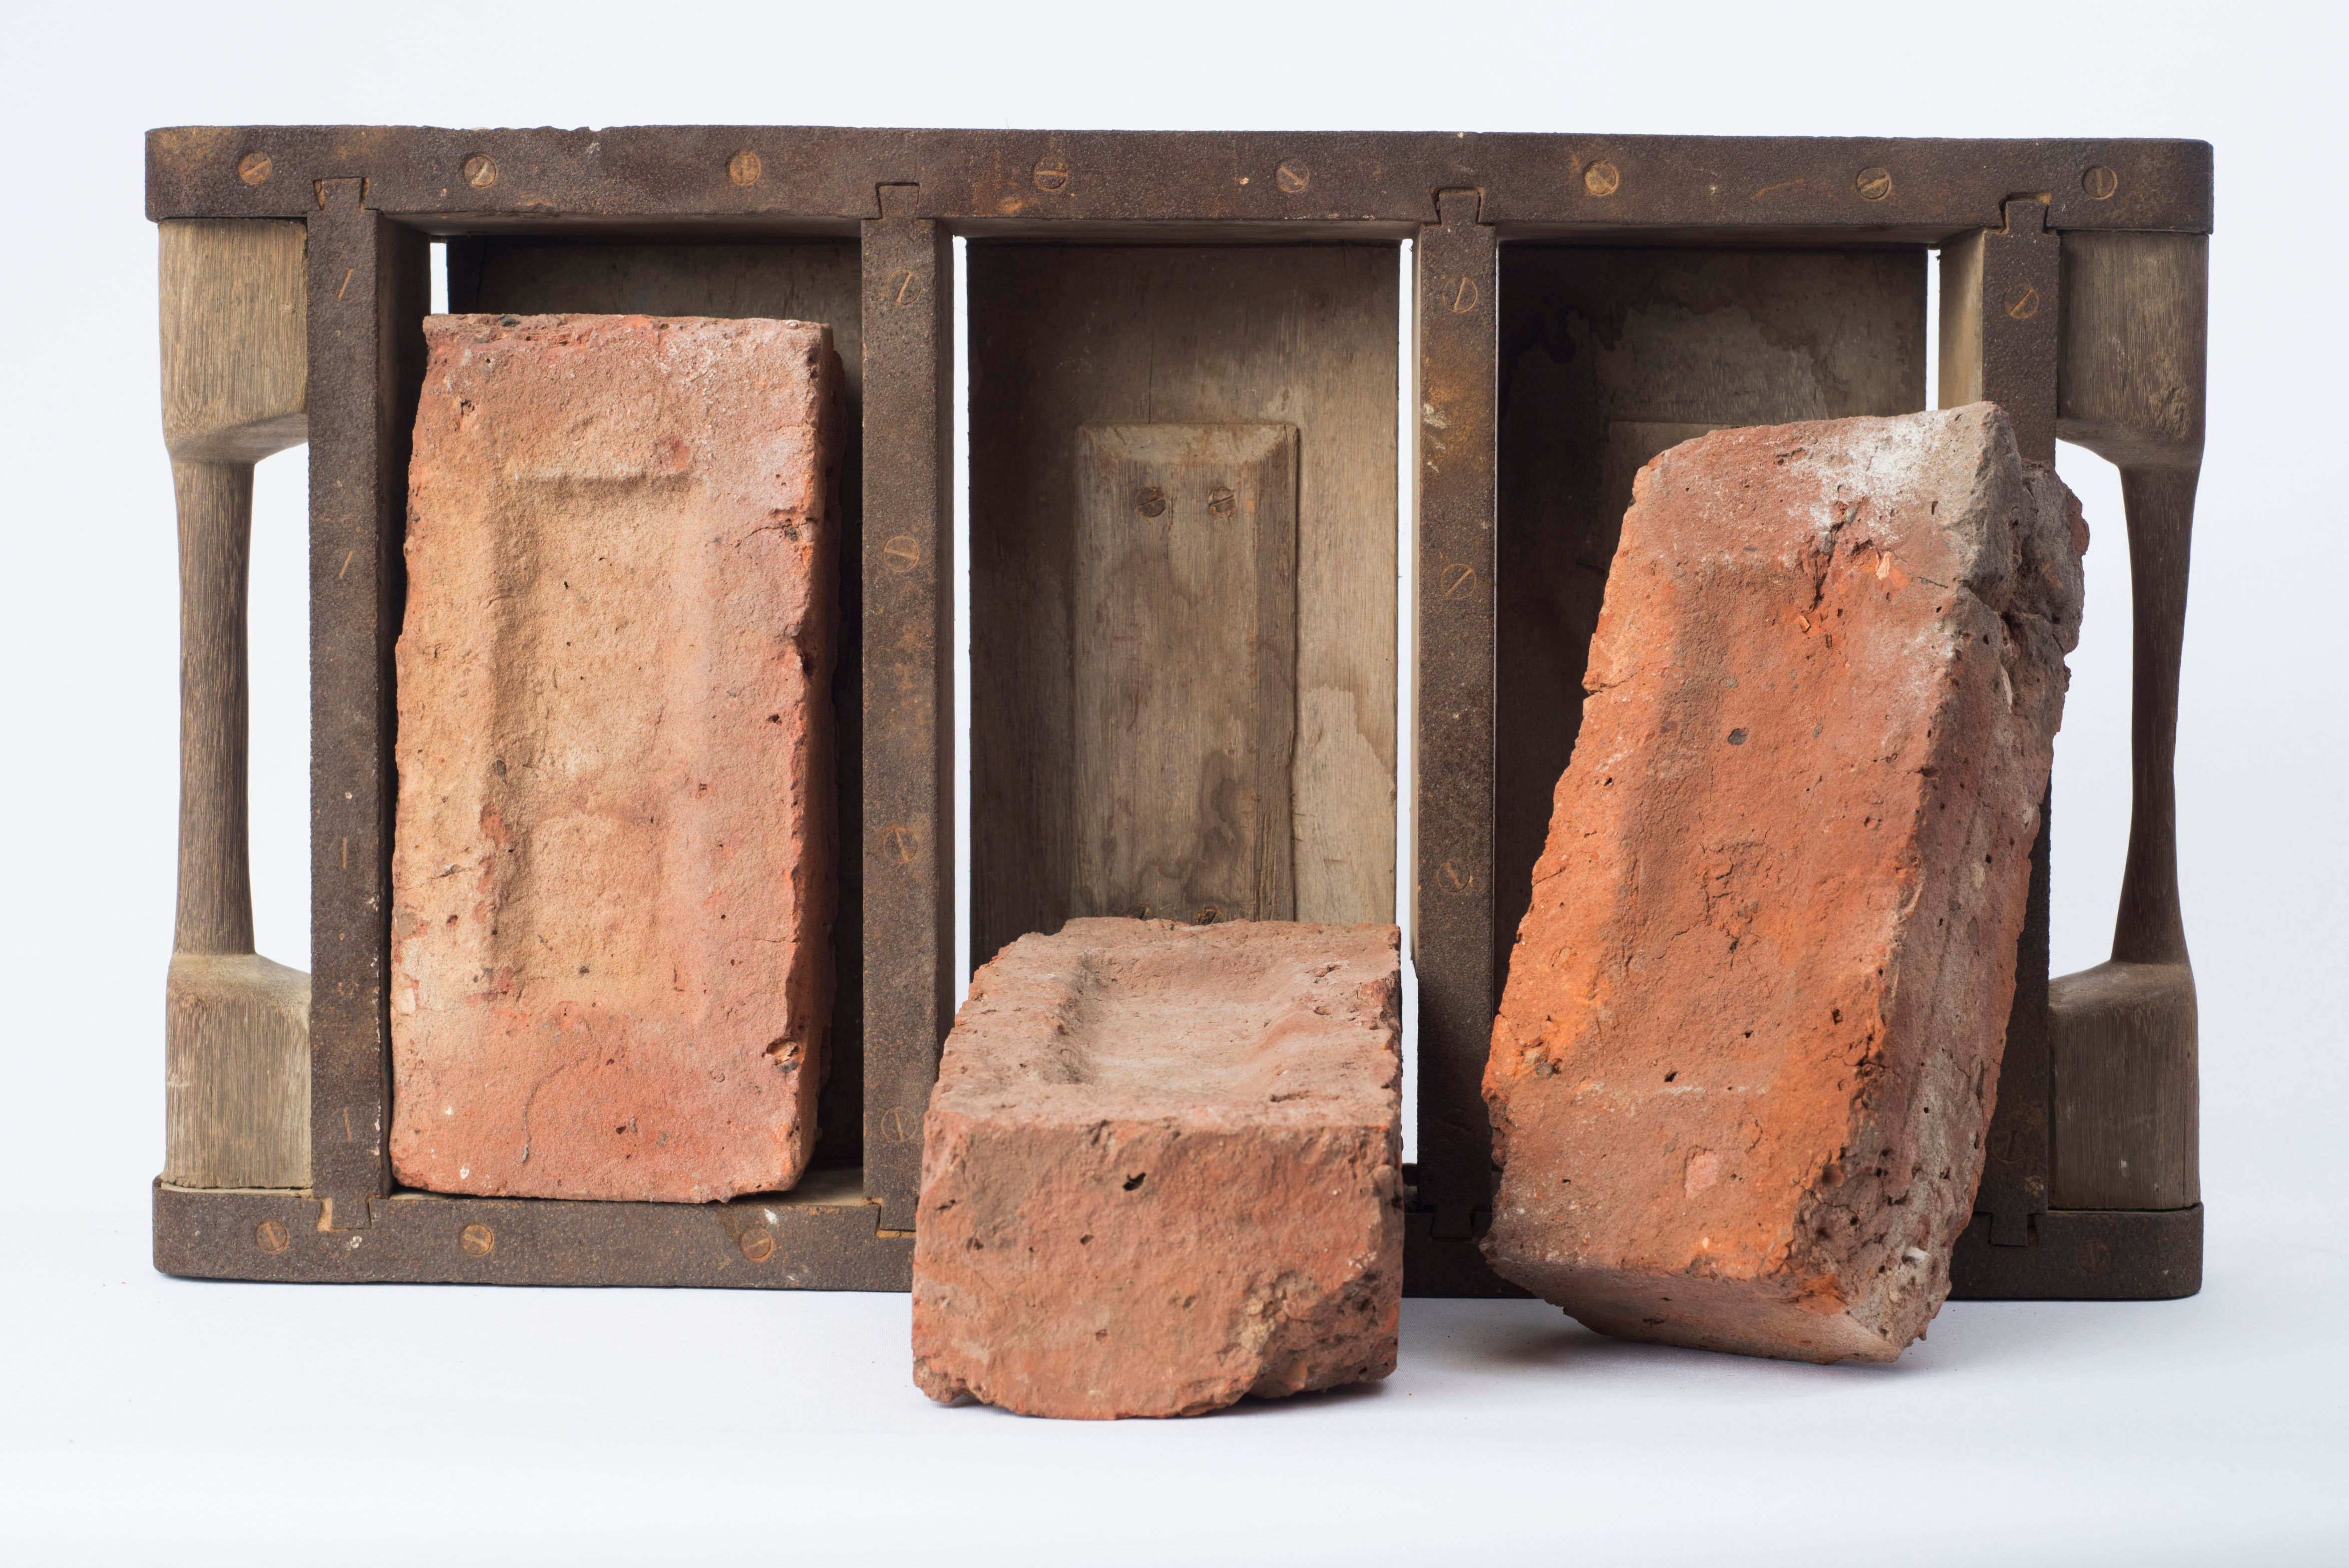 Bricks and Mould – East Grinstead Museum